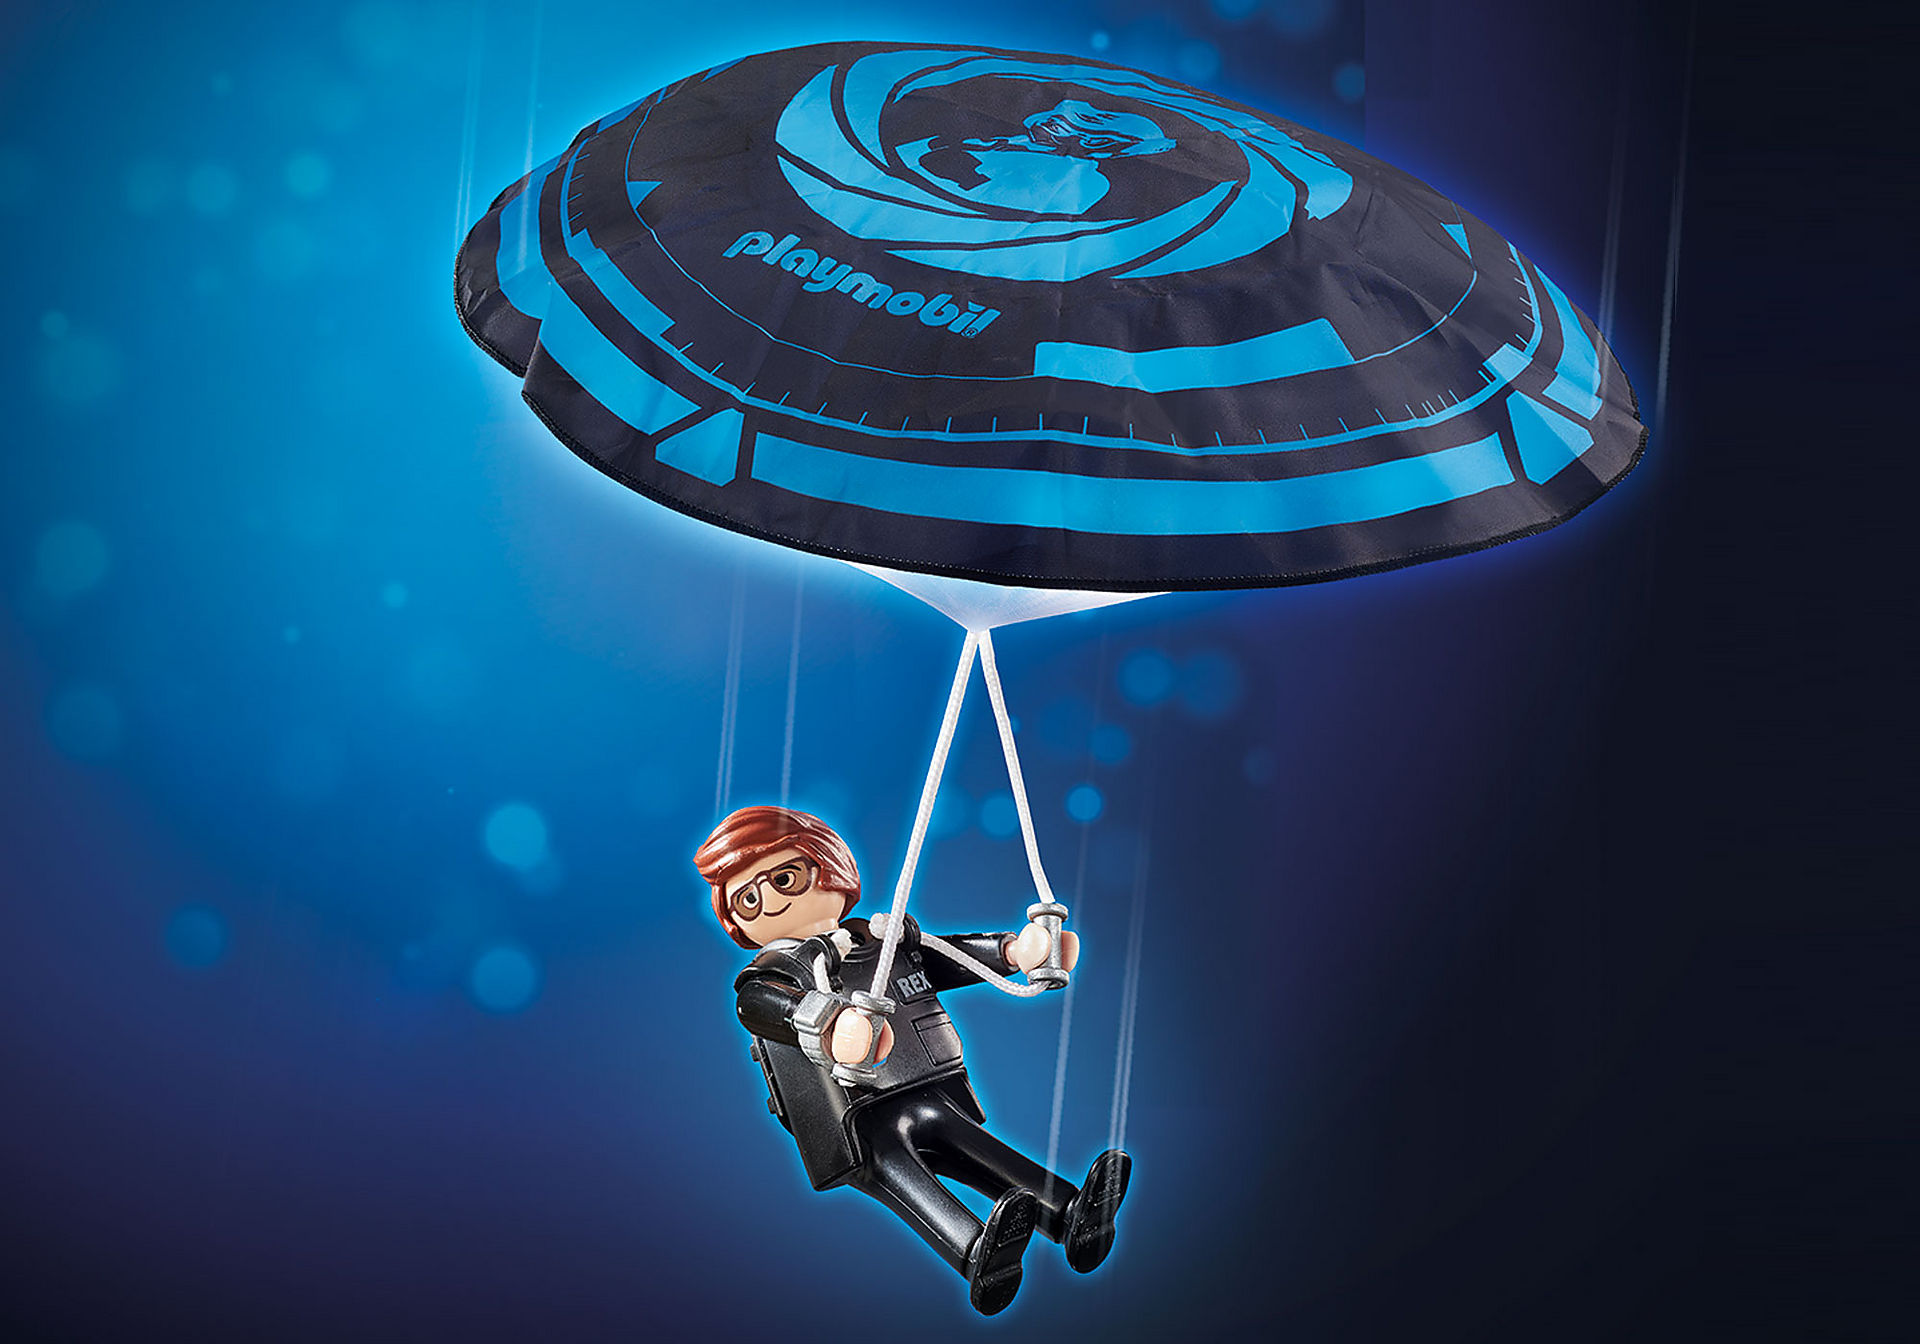 70070 PLAYMOBIL: THE MOVIE Rex Dasher with Parachute zoom image1